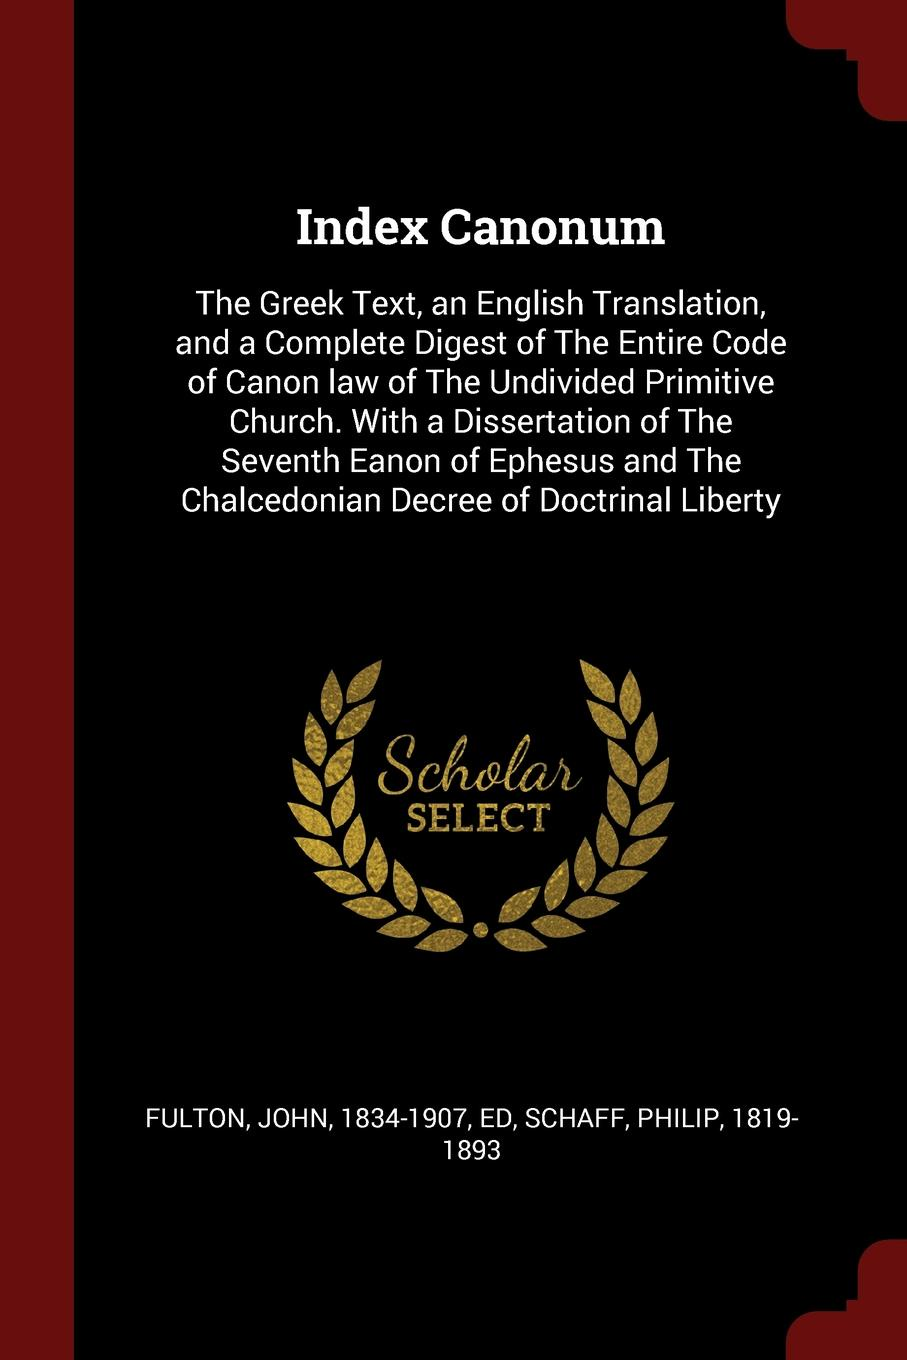 Index Canonum. The Greek Text, an English Translation, and a Complete Digest of The Entire Code of Canon law of The Undivided Primitive Church. With a Dissertation of The Seventh Eanon of Ephesus and The Chalcedonian Decree of Doctrinal Liberty